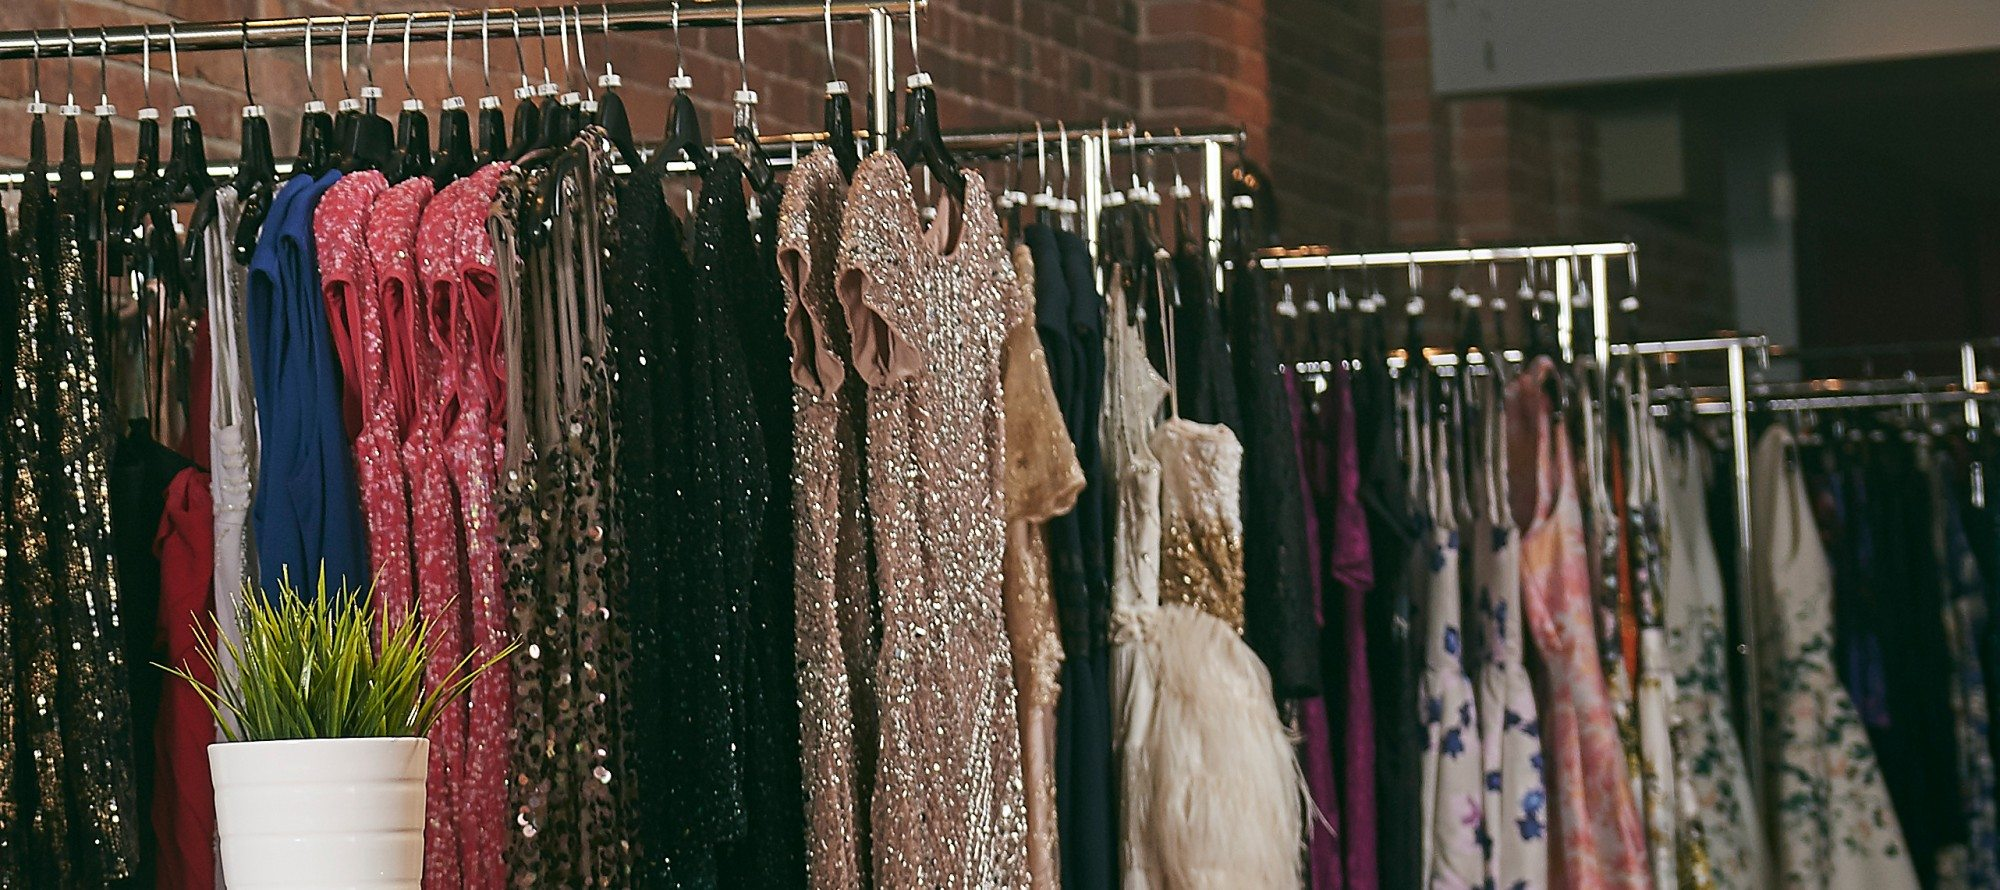 Rent Frock Repeat — Dress-rental company gives tips for perfect Holiday gala look